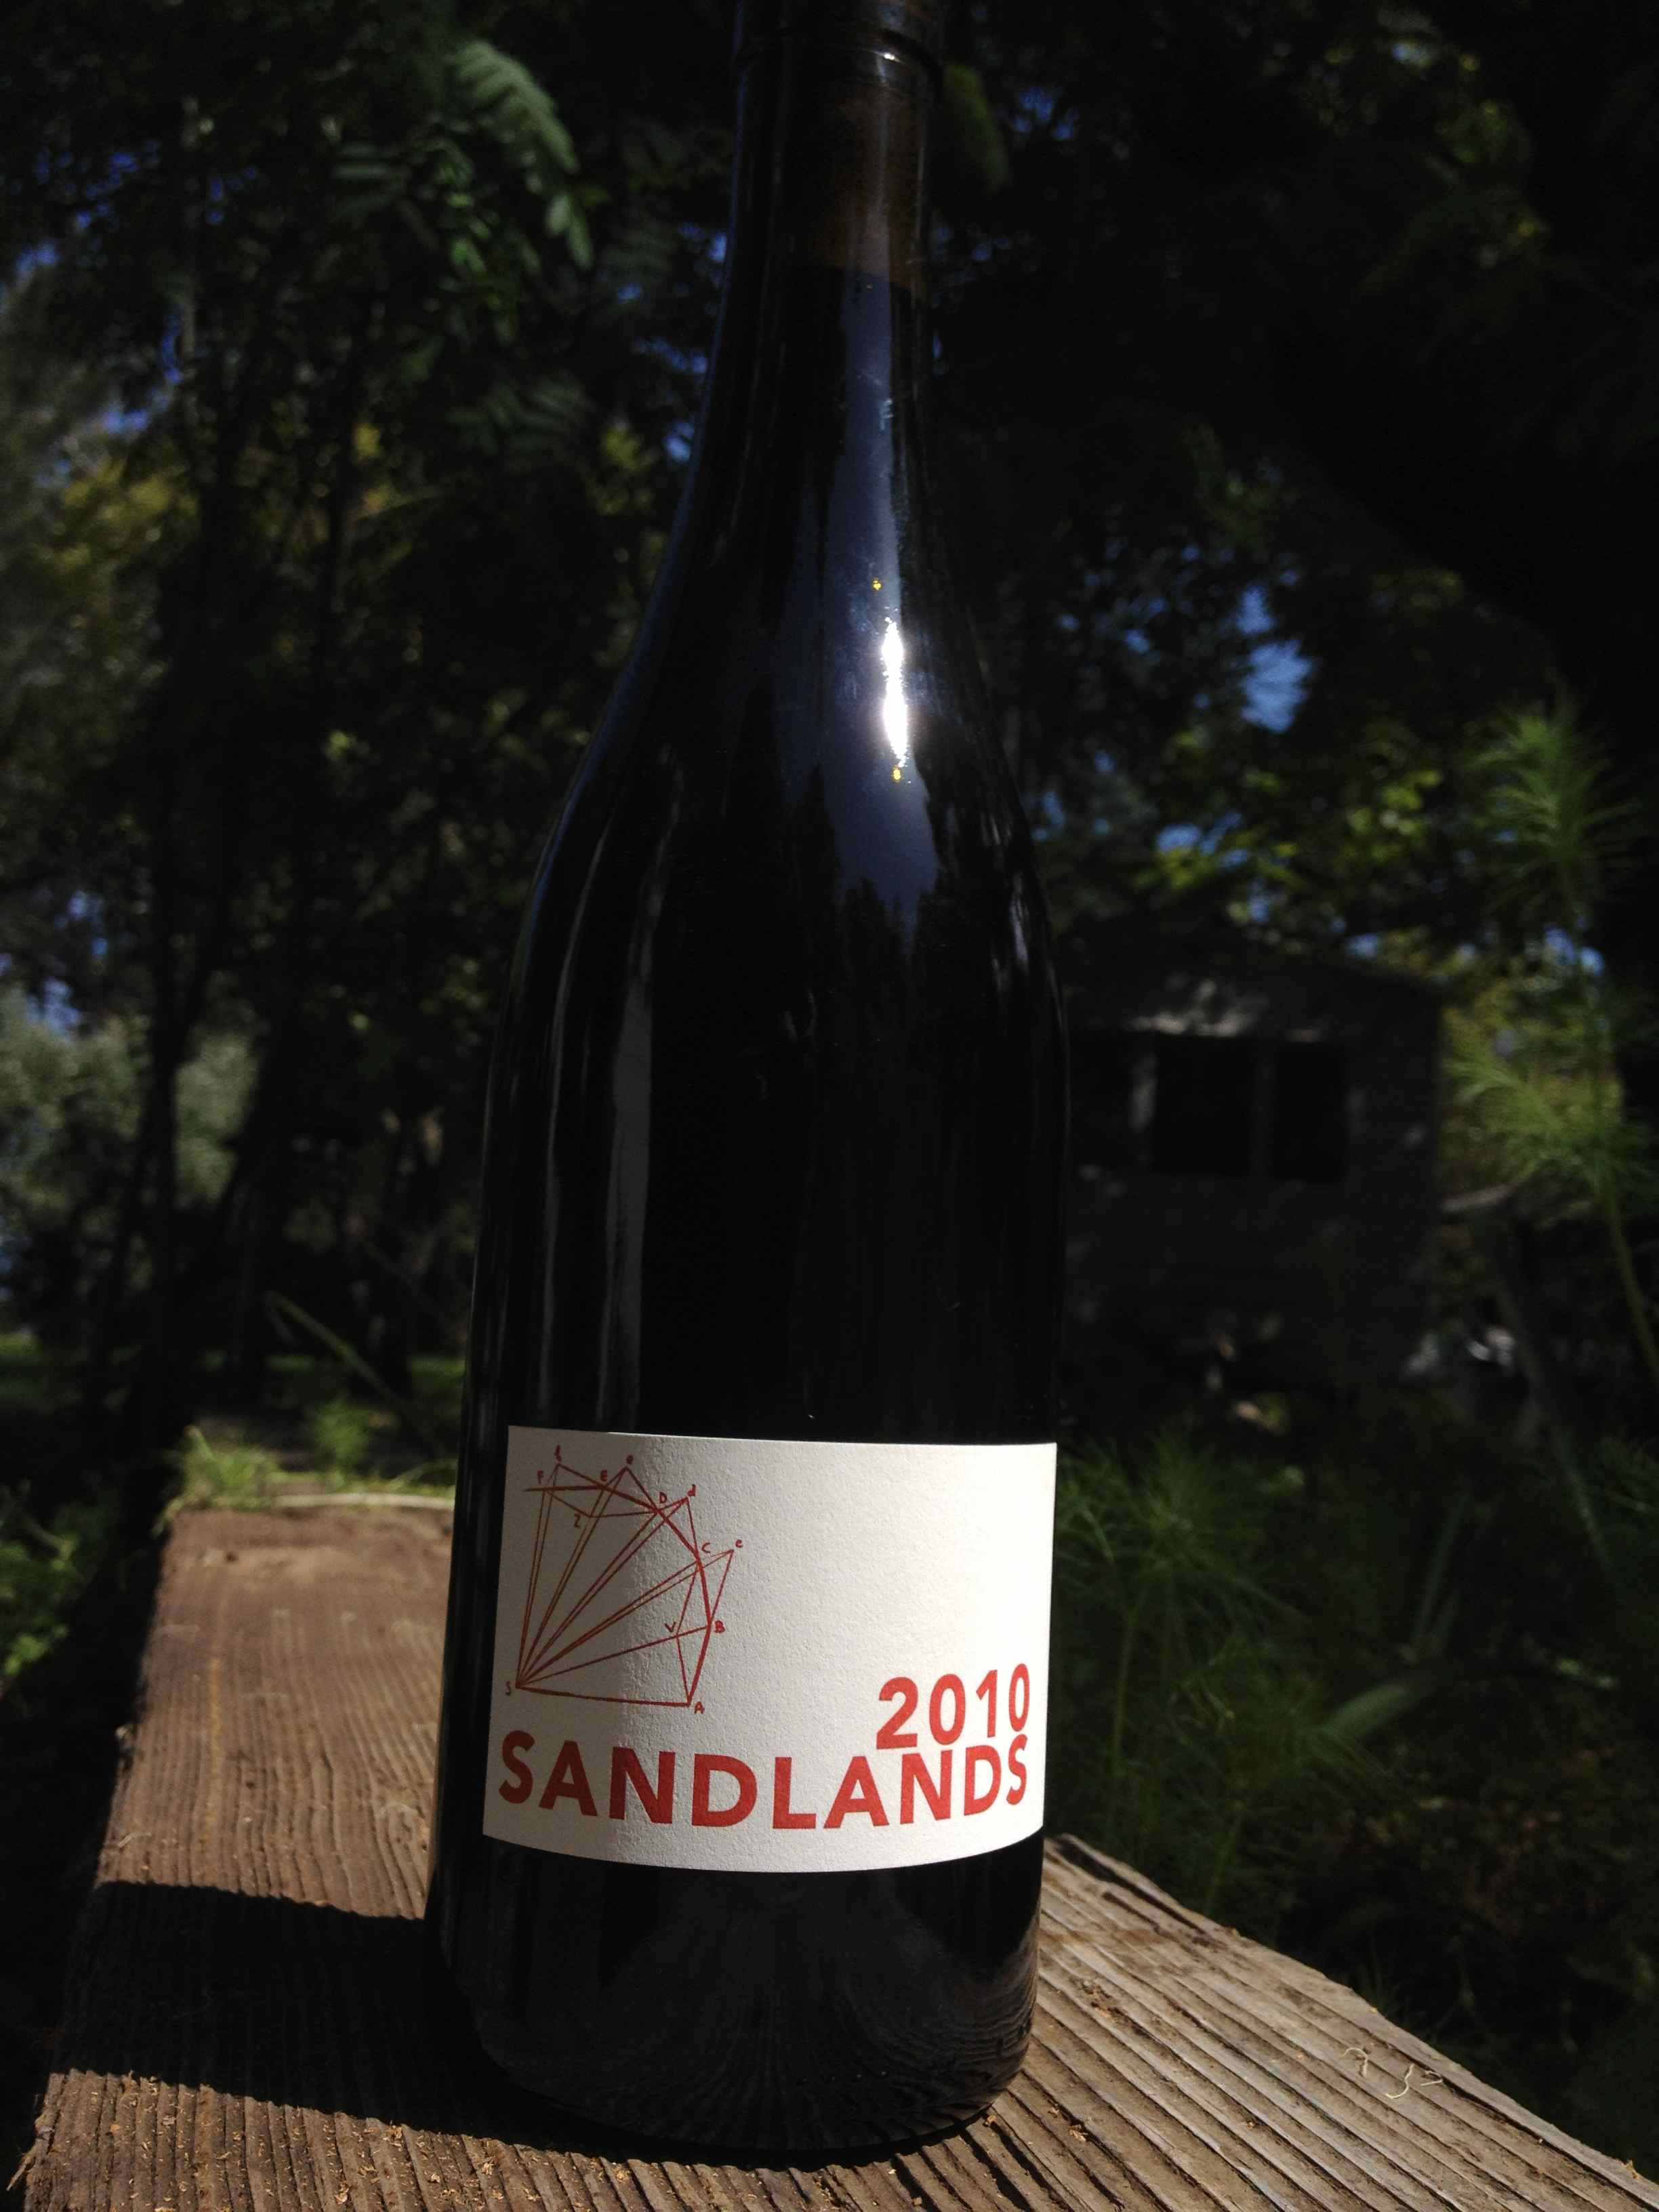 2010 sandlands tom delbarba vineyards - The Scholium Project